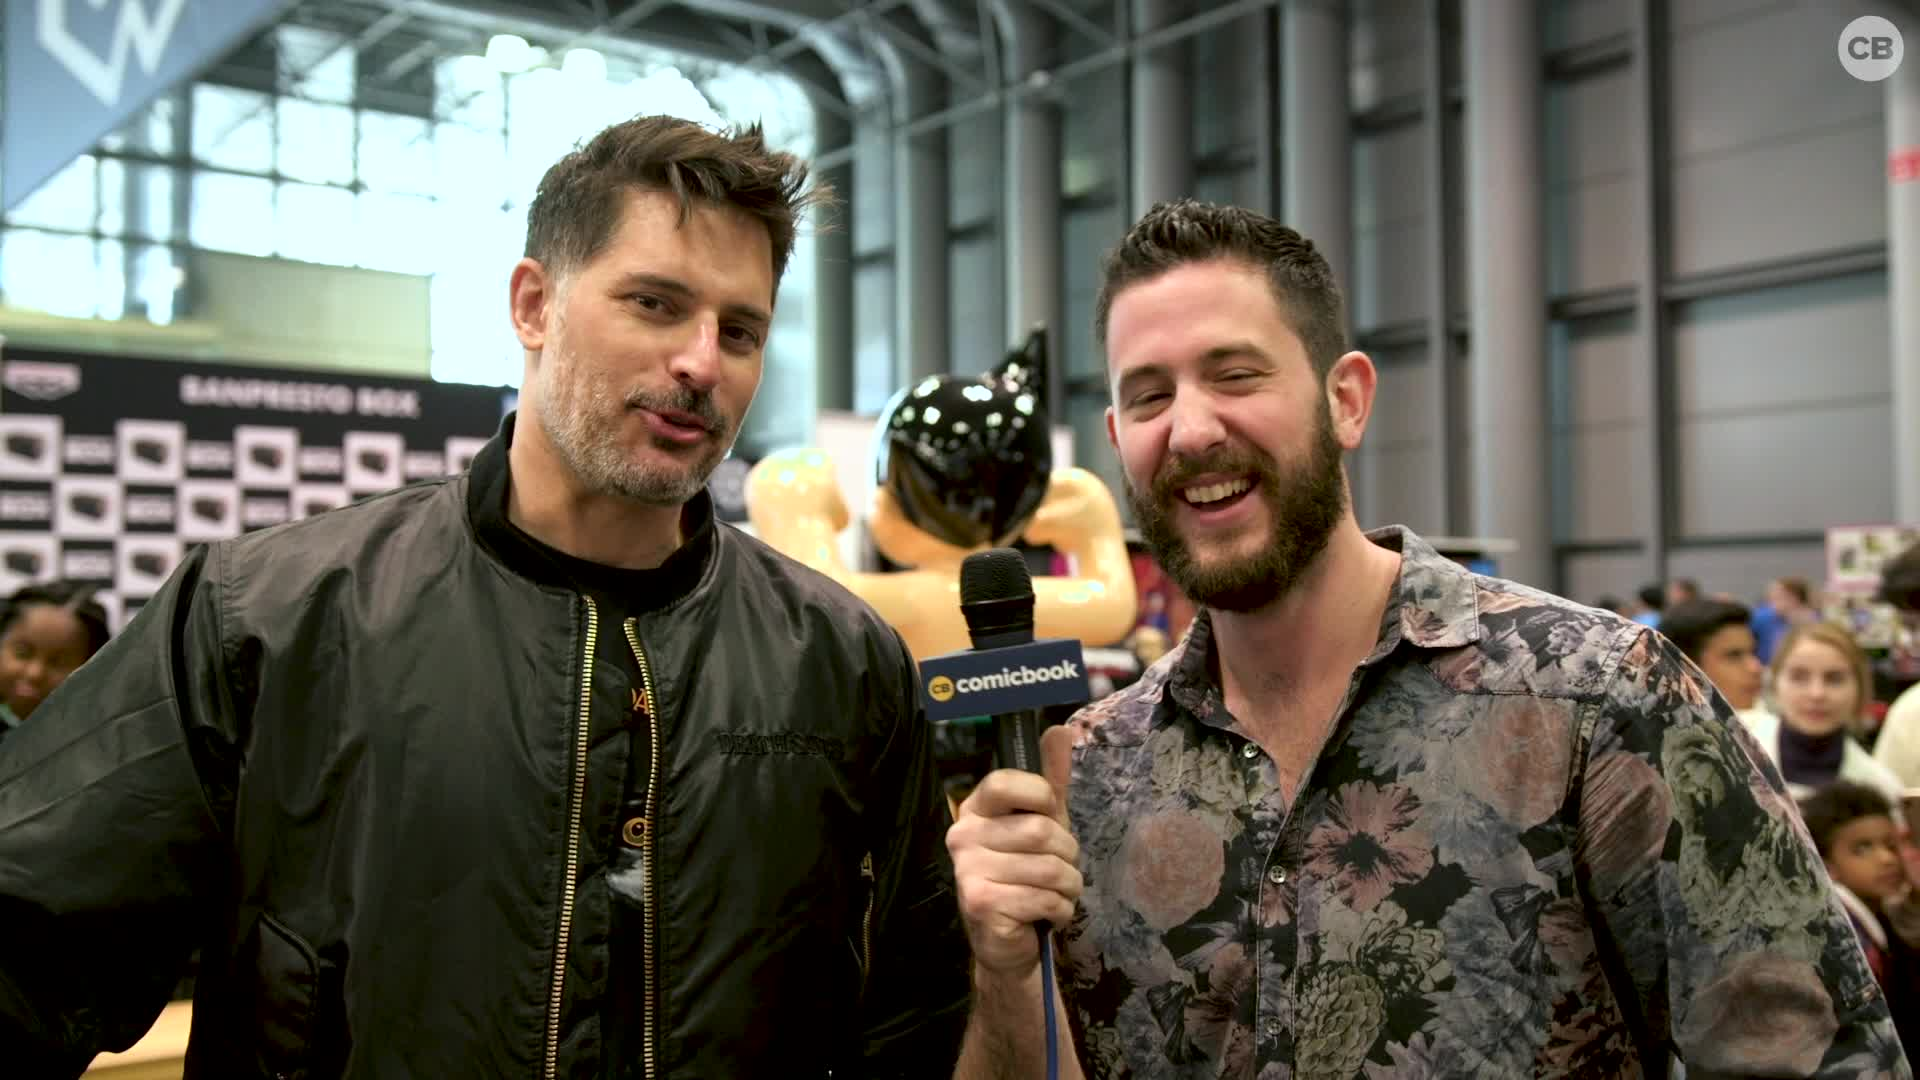 Joe Manganiello - NYCC 2019 Exclusive Interview screen capture